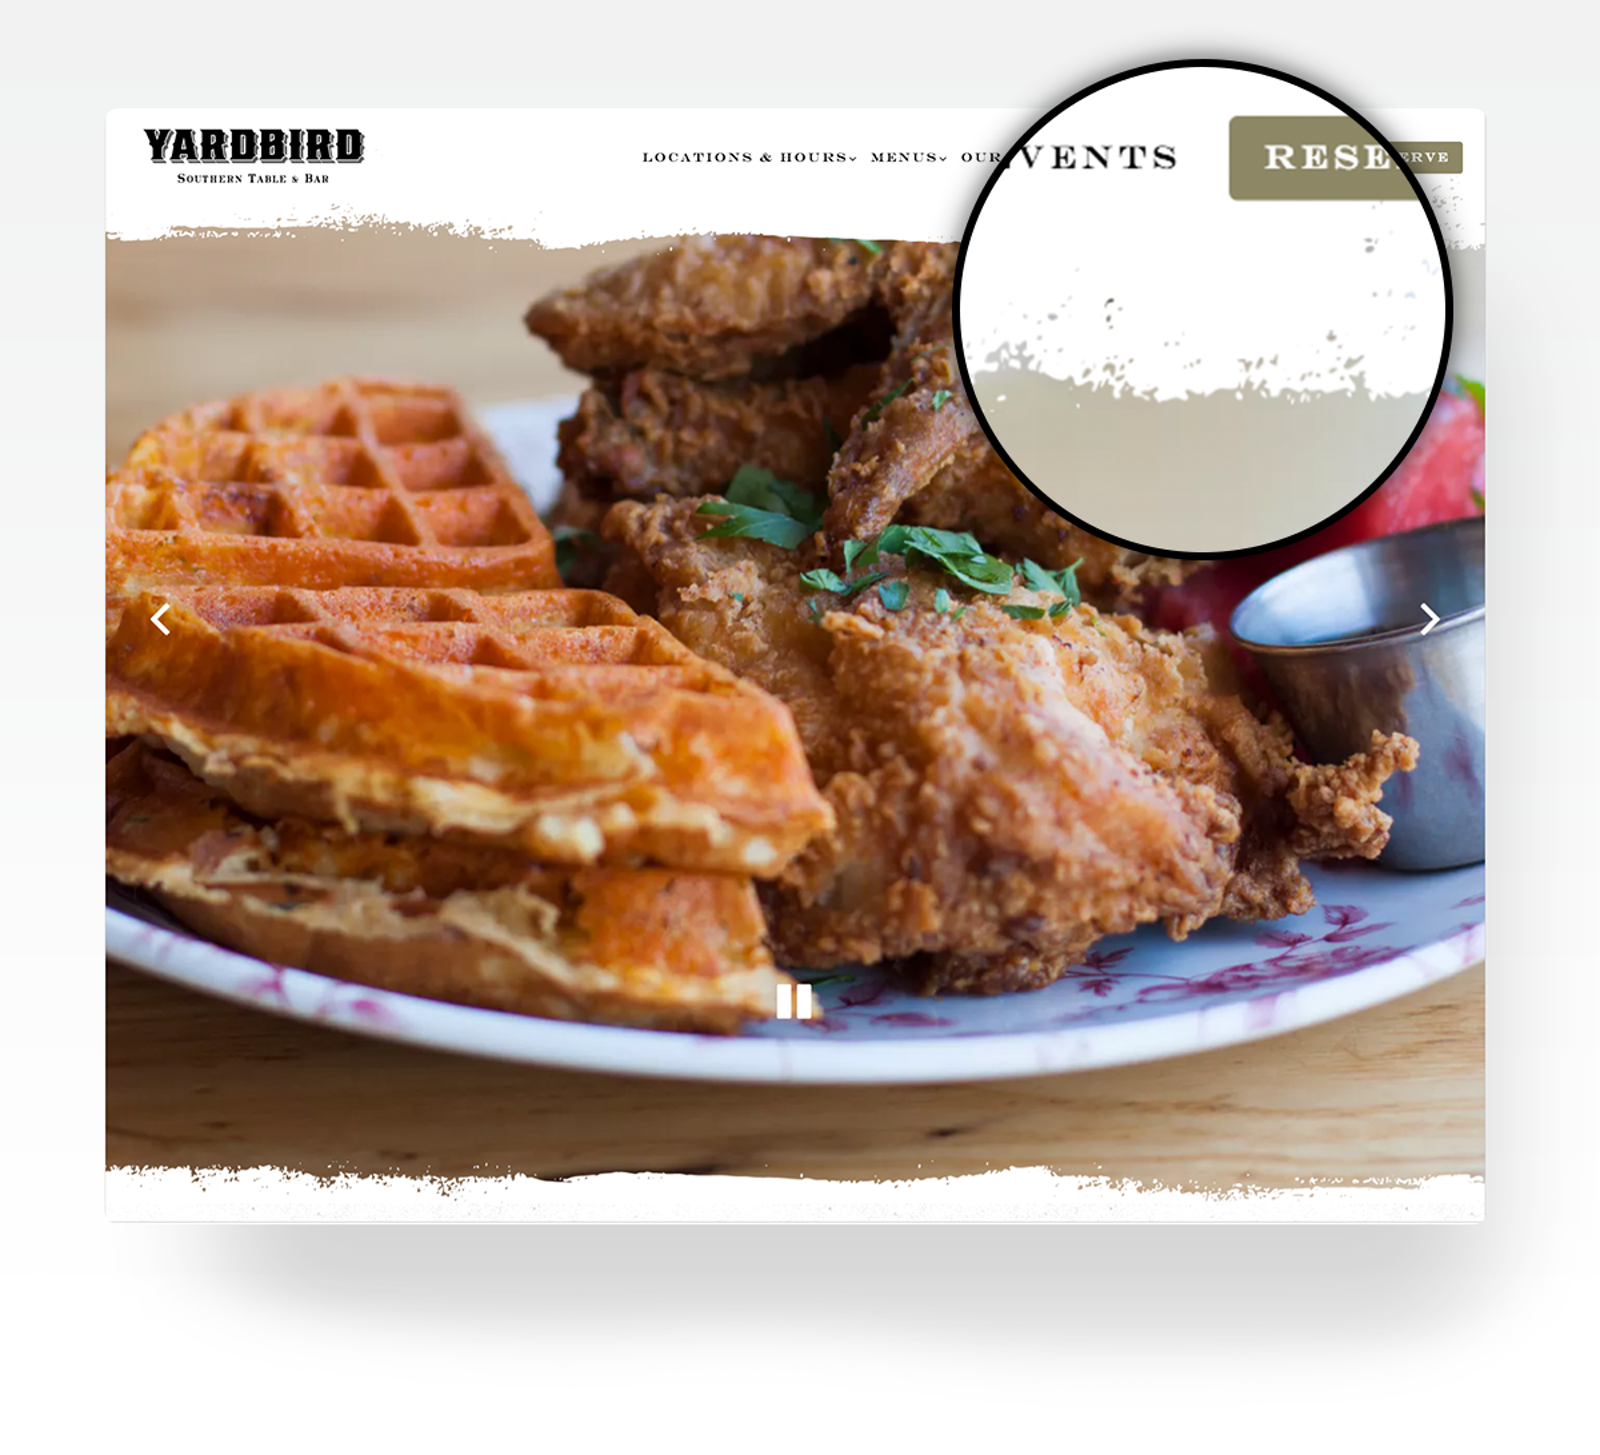 Yardbird's website